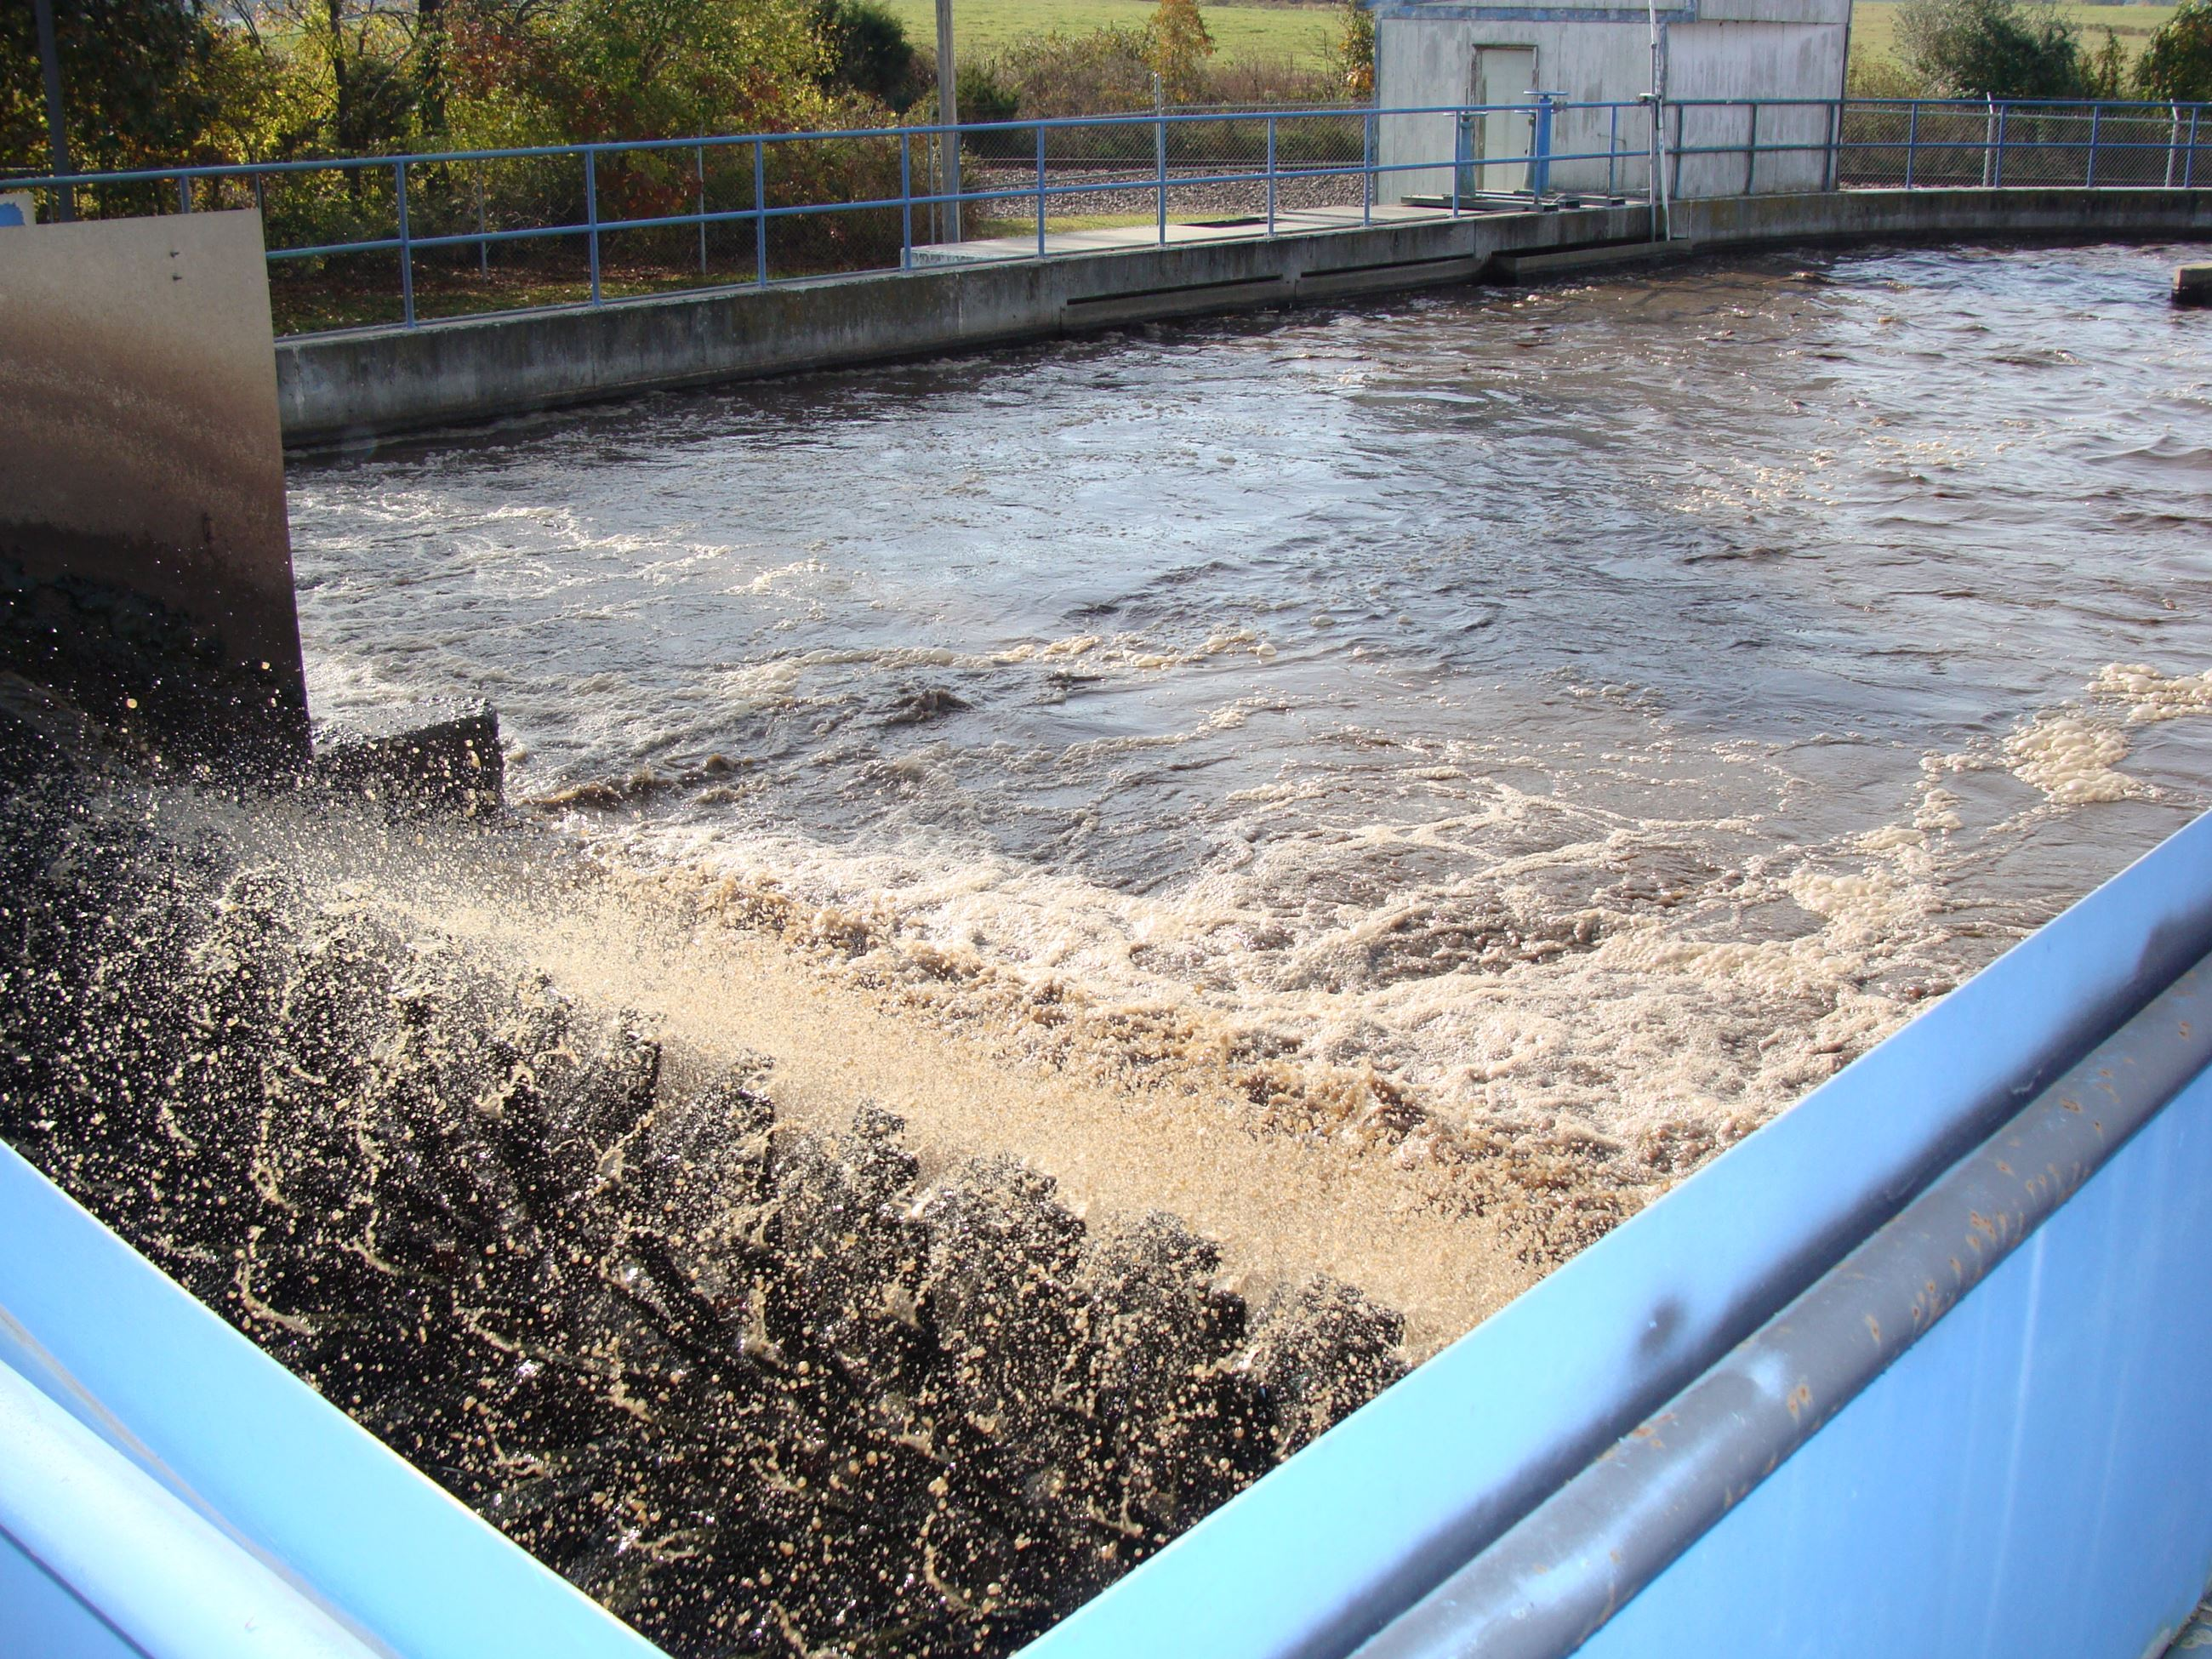 Wastewater being treated and filtered